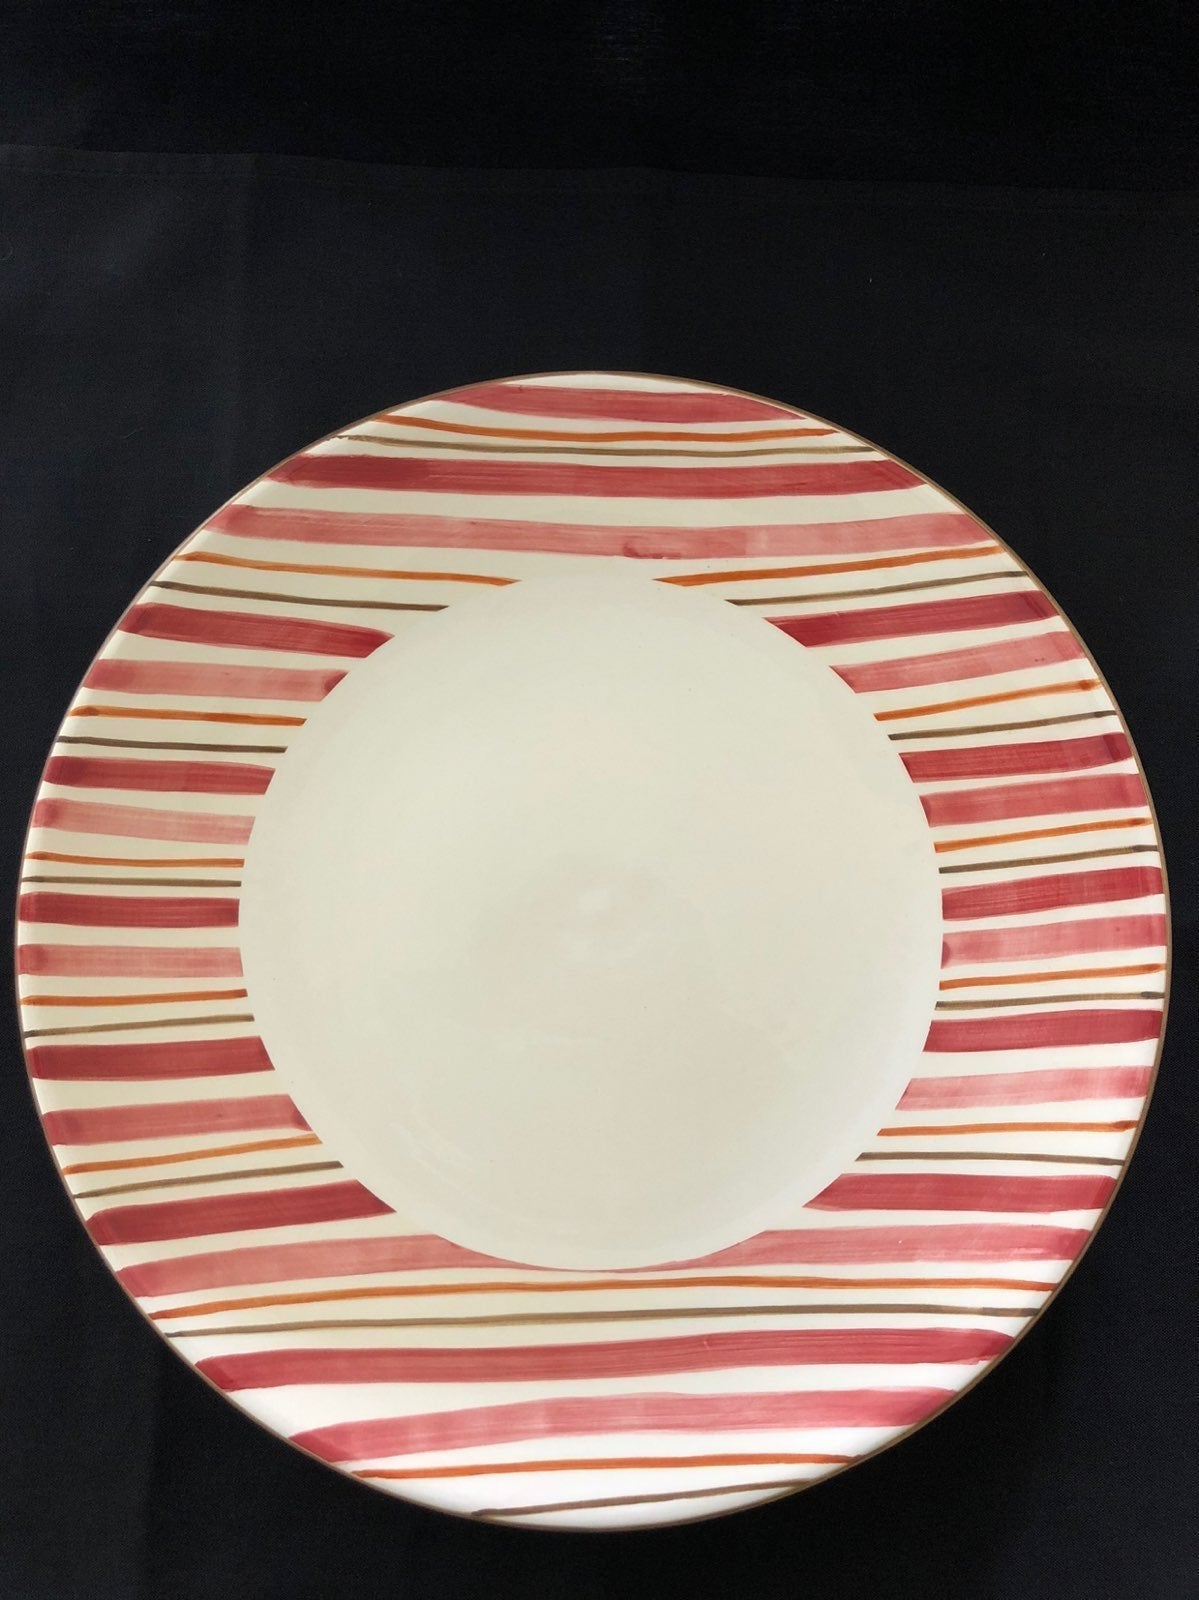 3 Royal Doulton Jubilee Plates / Charger